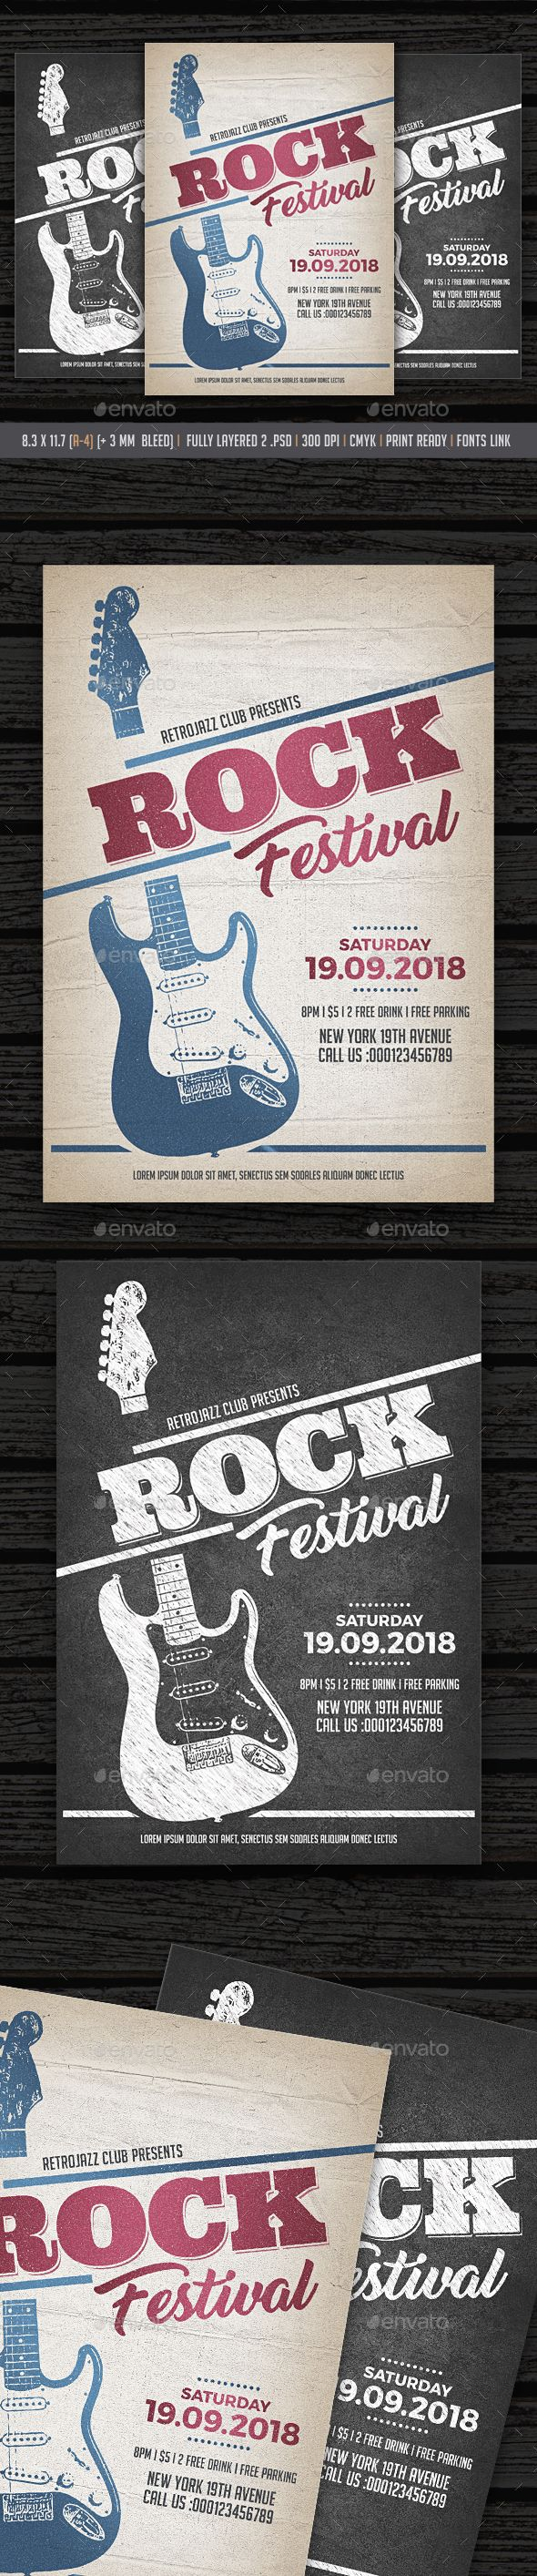 393 best Flyer images on Pinterest | Business flyers, Corporate ...